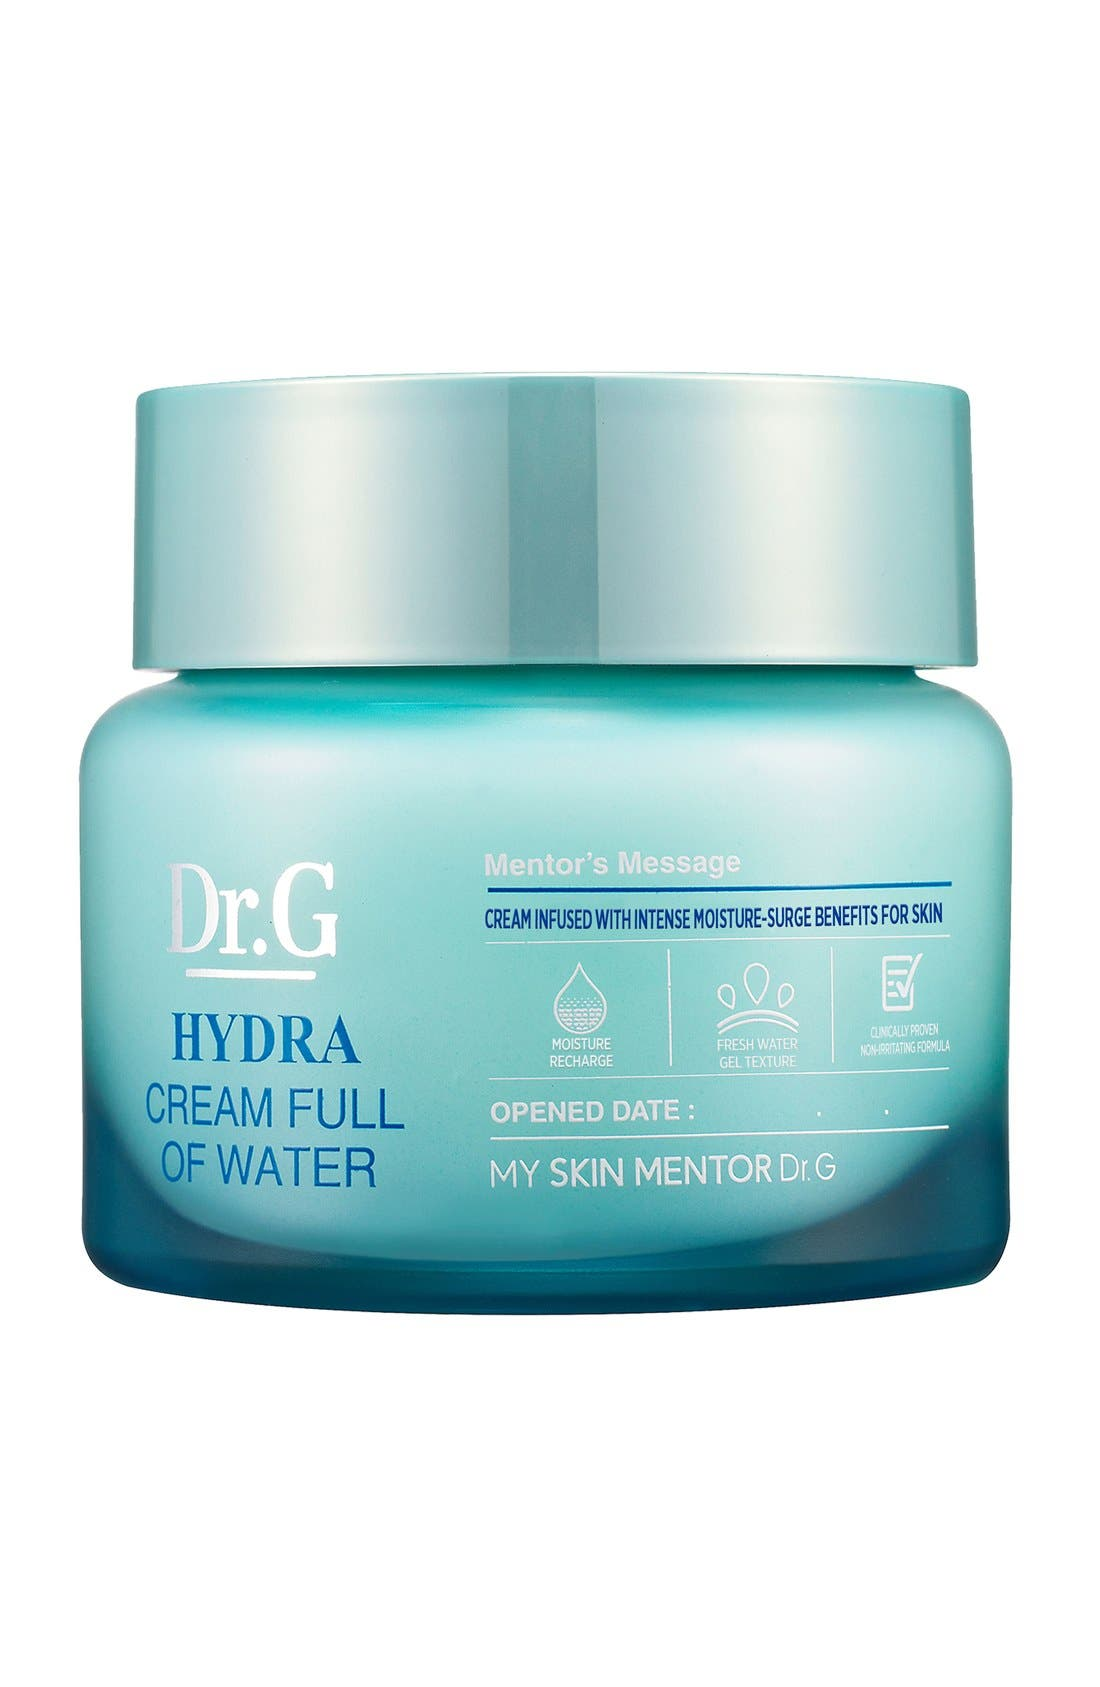 My Skin Mentor Dr. G Beauty Hydra Cream Full of Water (Nordstrom Exclusive)